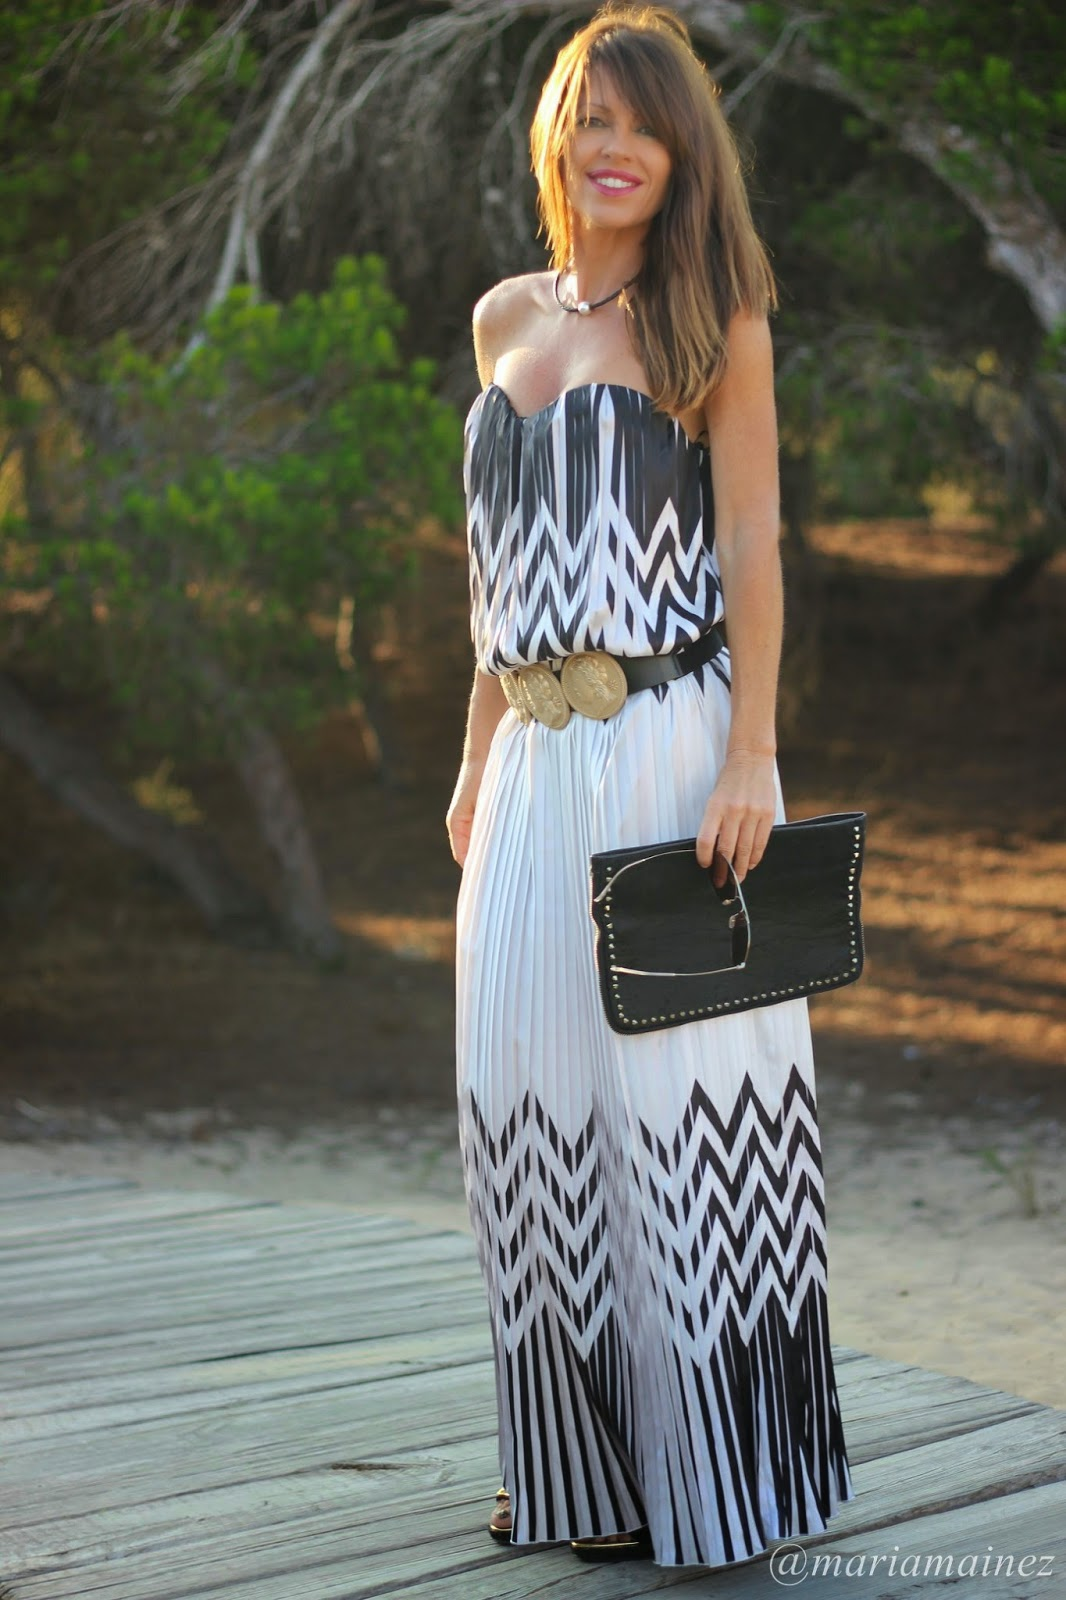 Sahoco Dress - Black and White - vestidos largos - gafas gucci